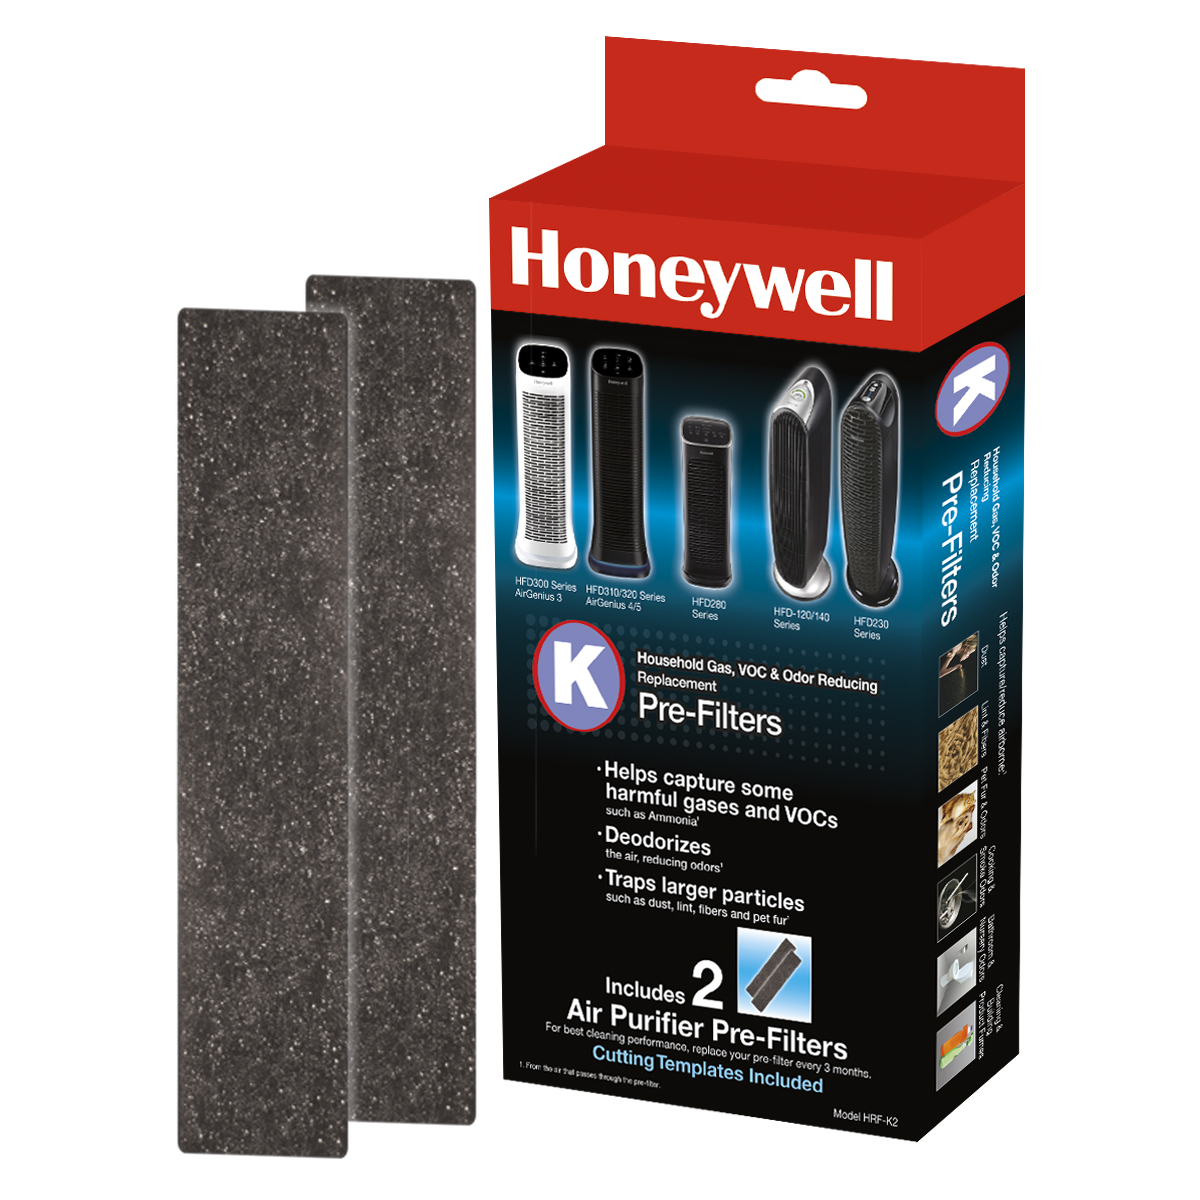 Honeywell Odor & Gas Reducing Pre-Filter K, 2 Pack, HRF-K2